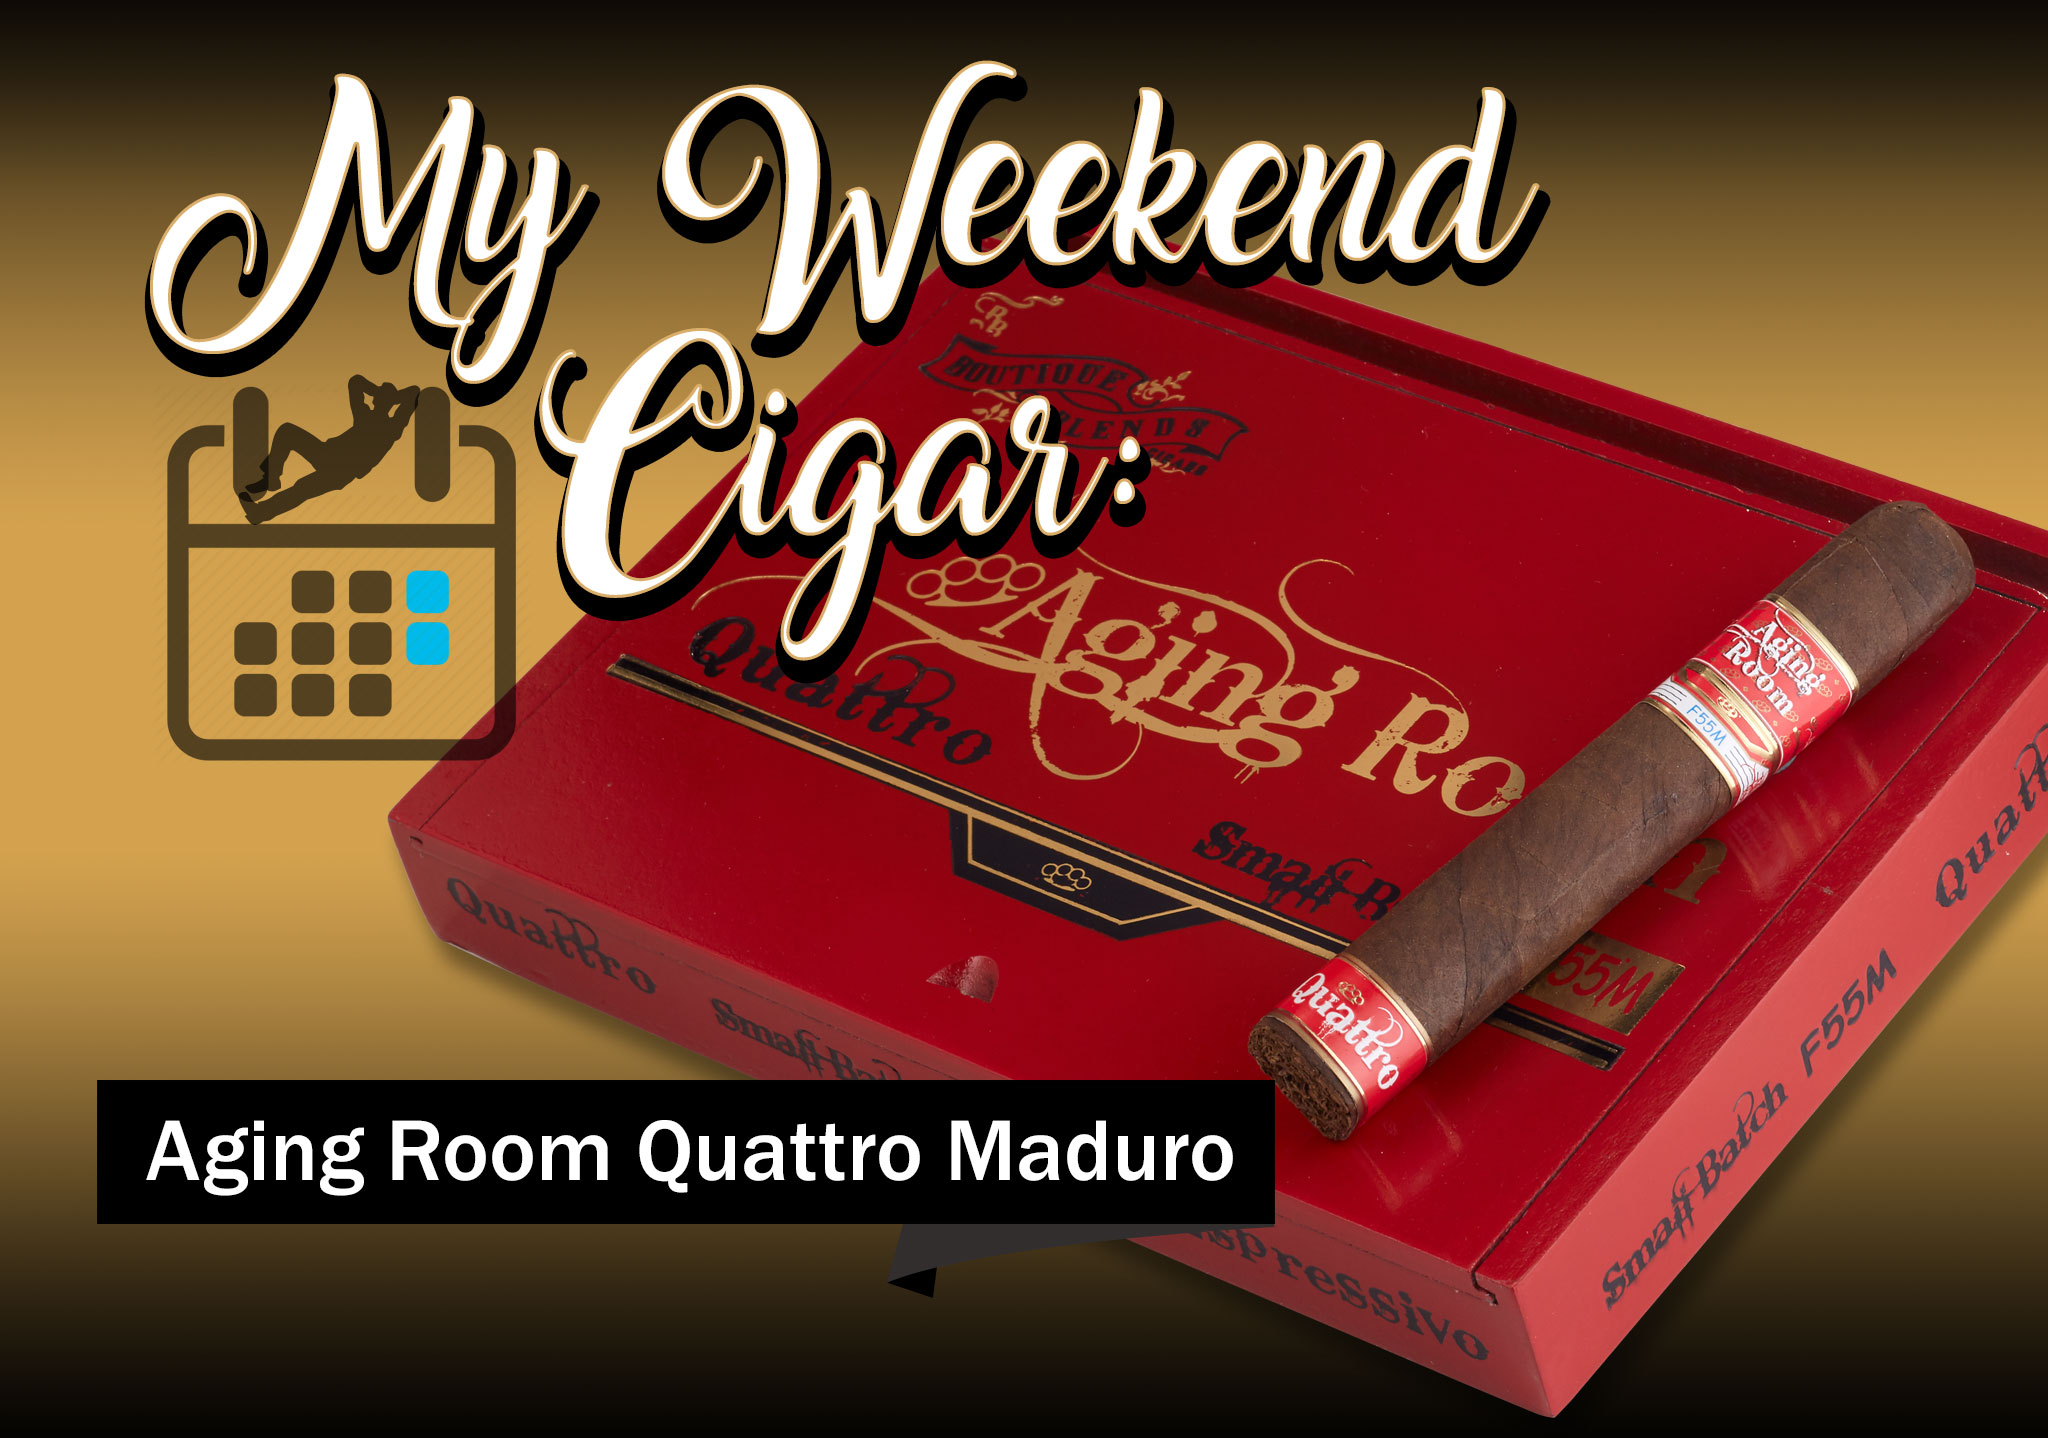 My Weekend Cigar: Mar. 12, 2018 – Aging Room Small Batch Quattro F55M Vibrato